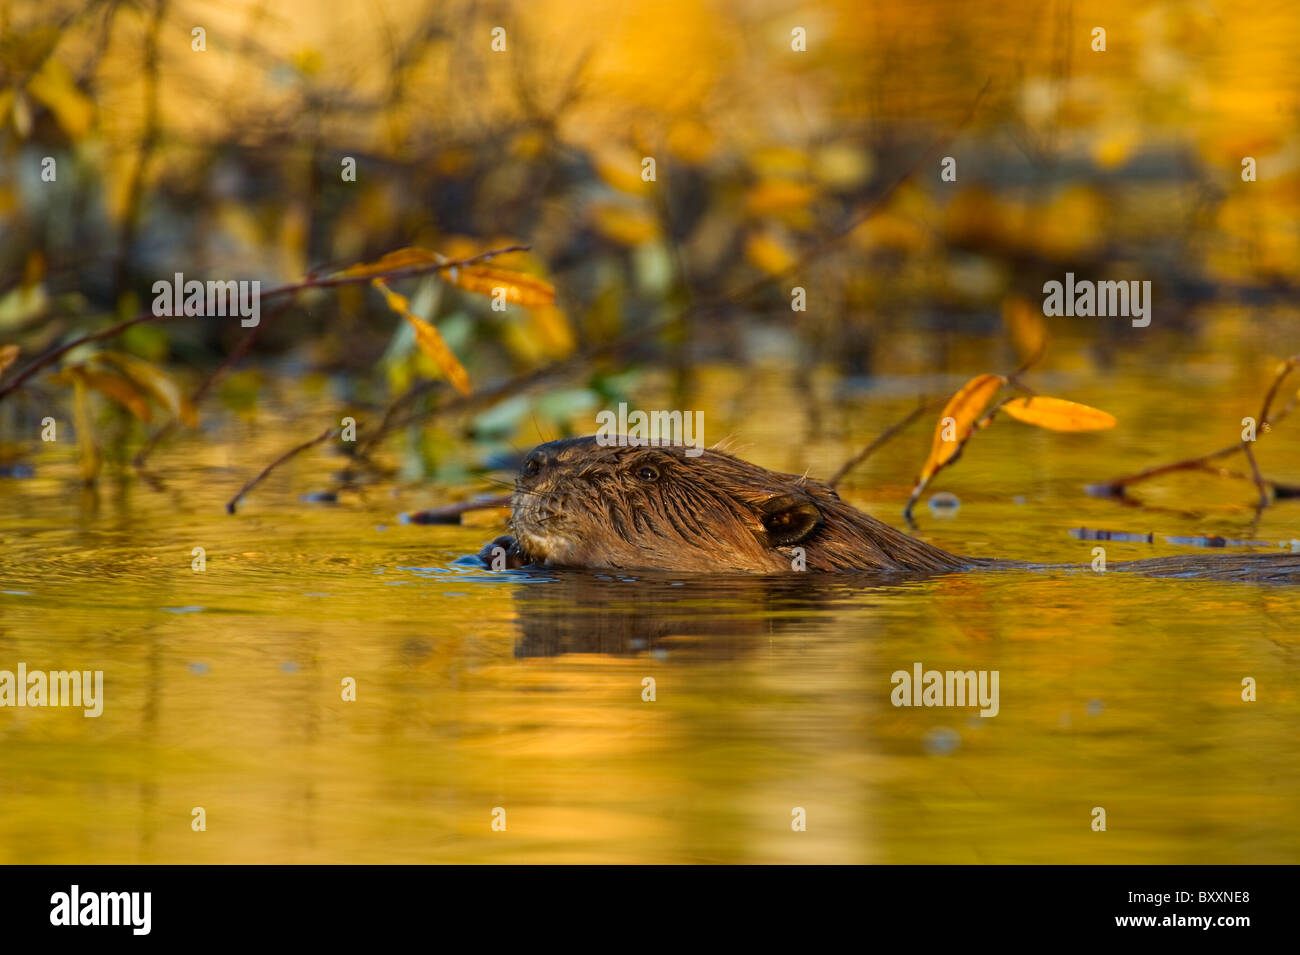 A side view of a beaver feeding on some branches - Stock Image